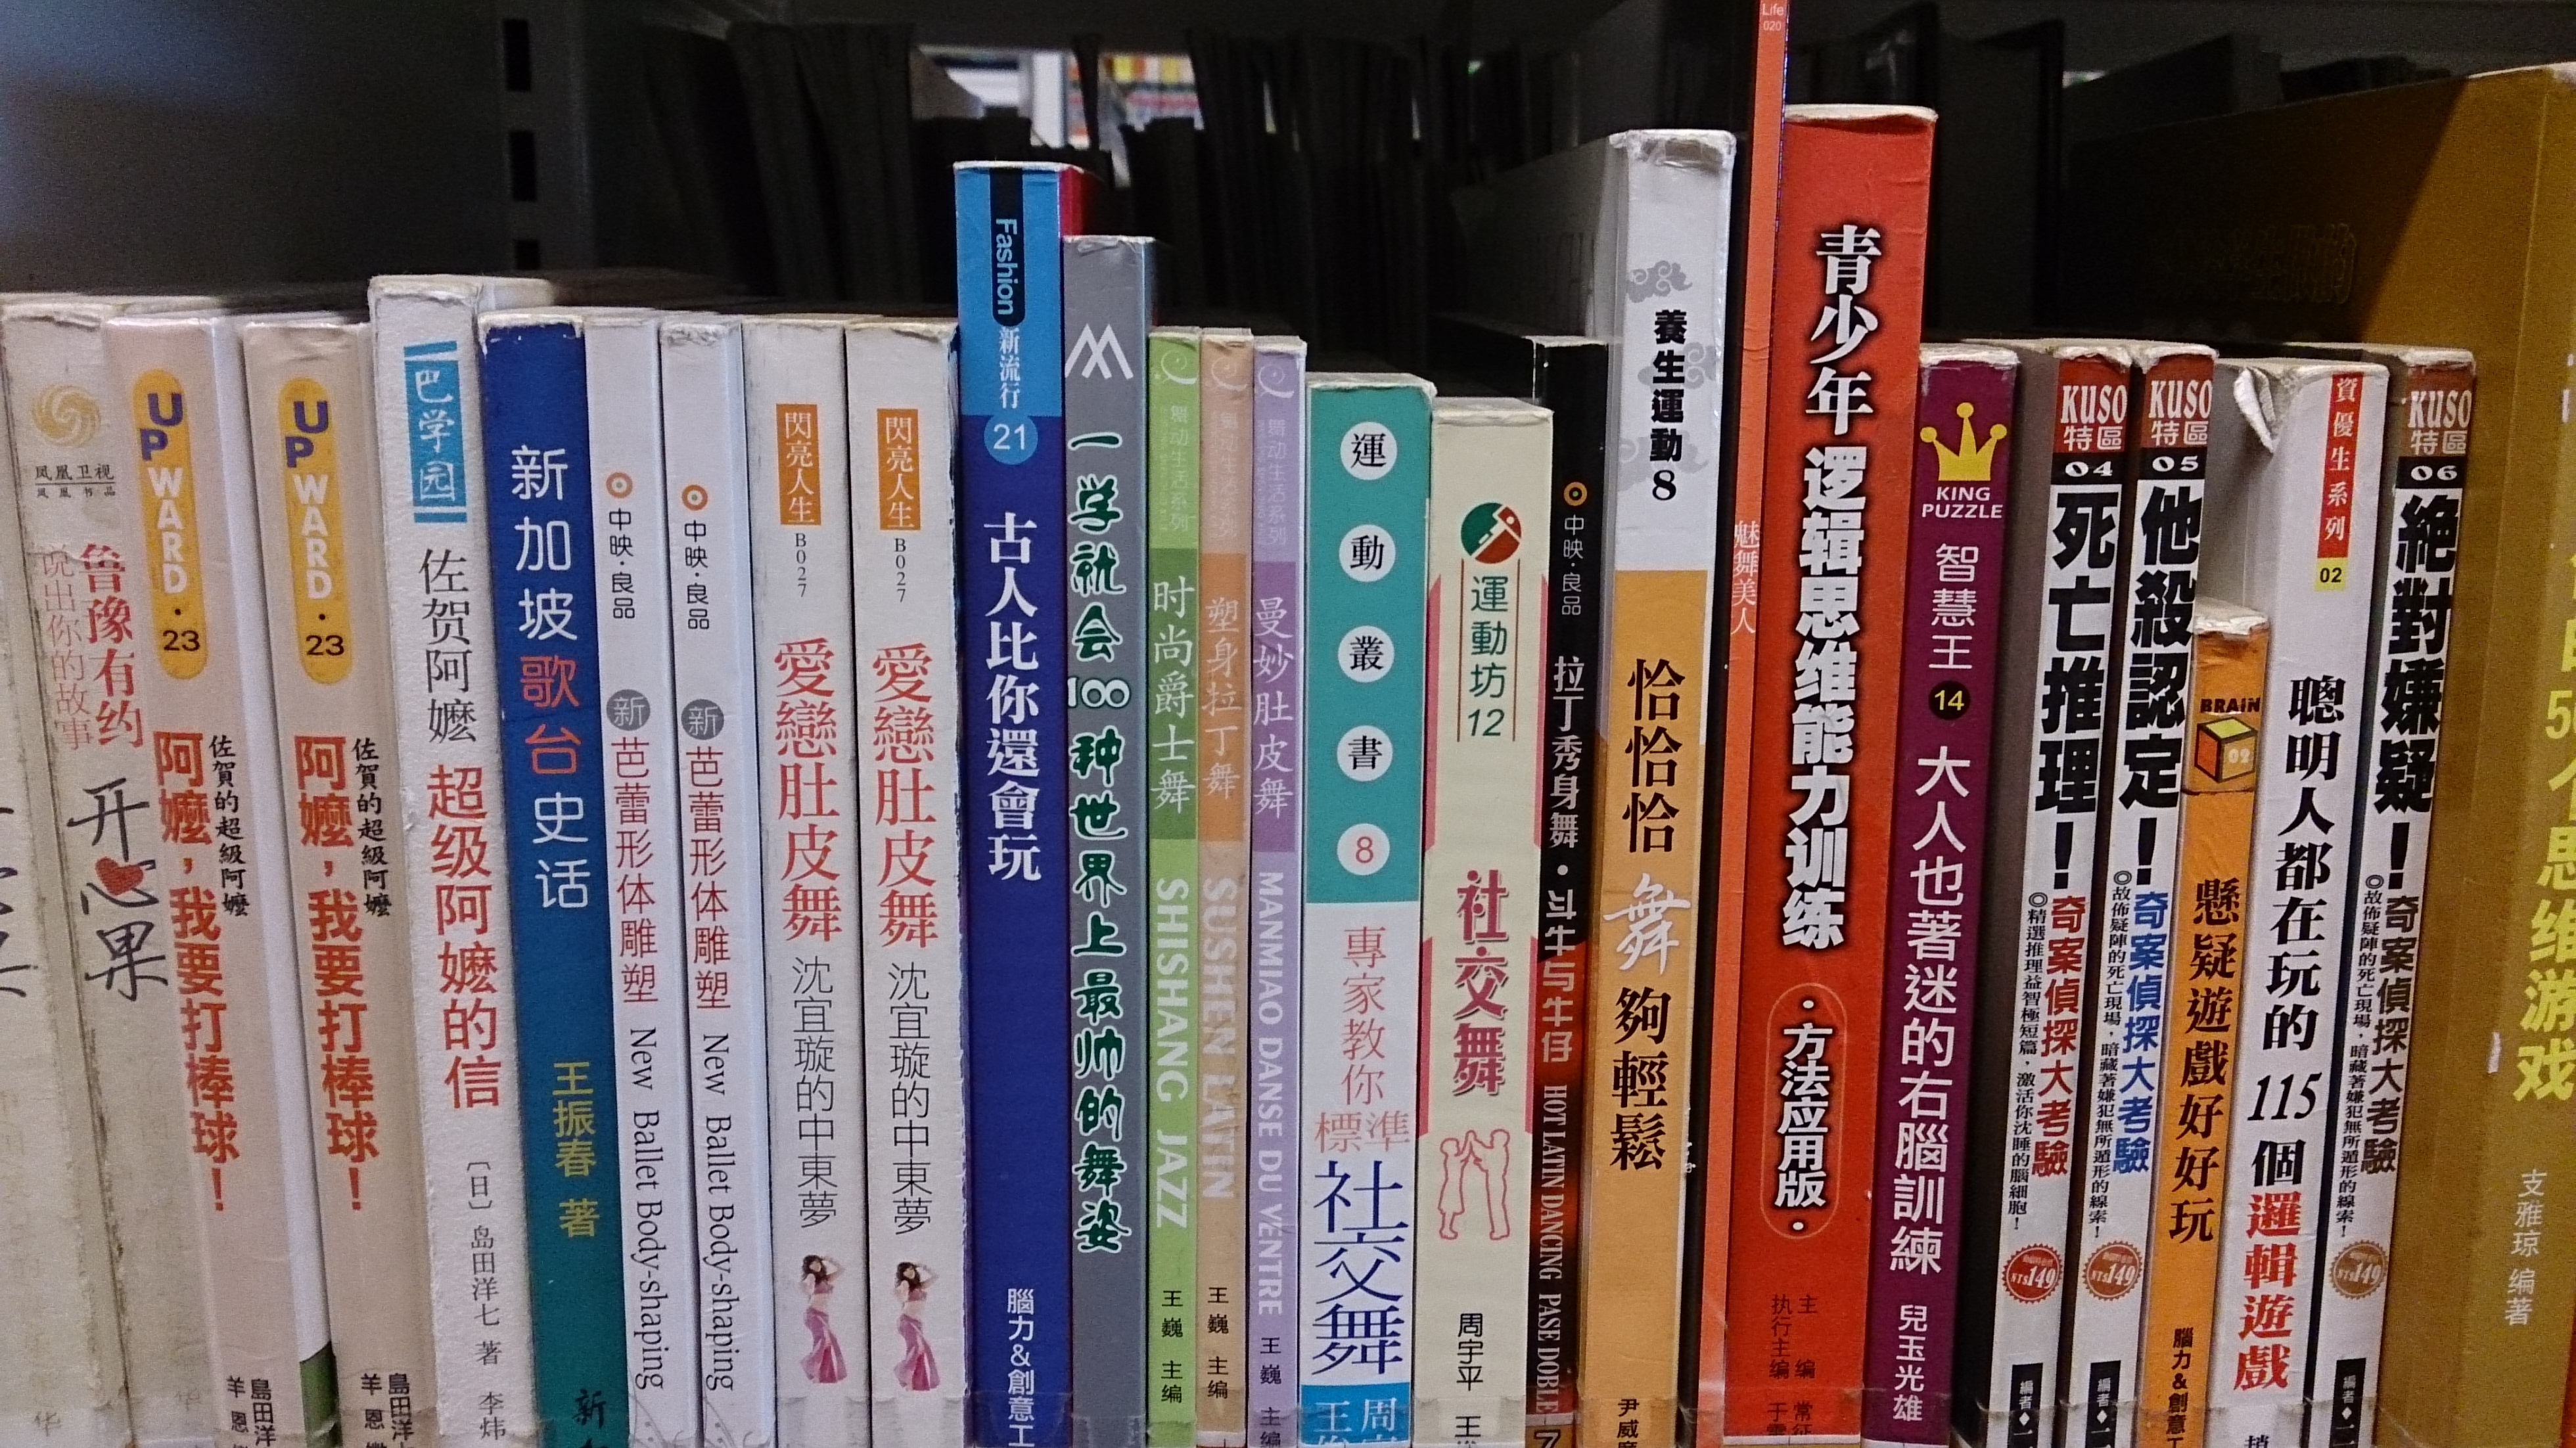 Shelf of books in the Chinese language.